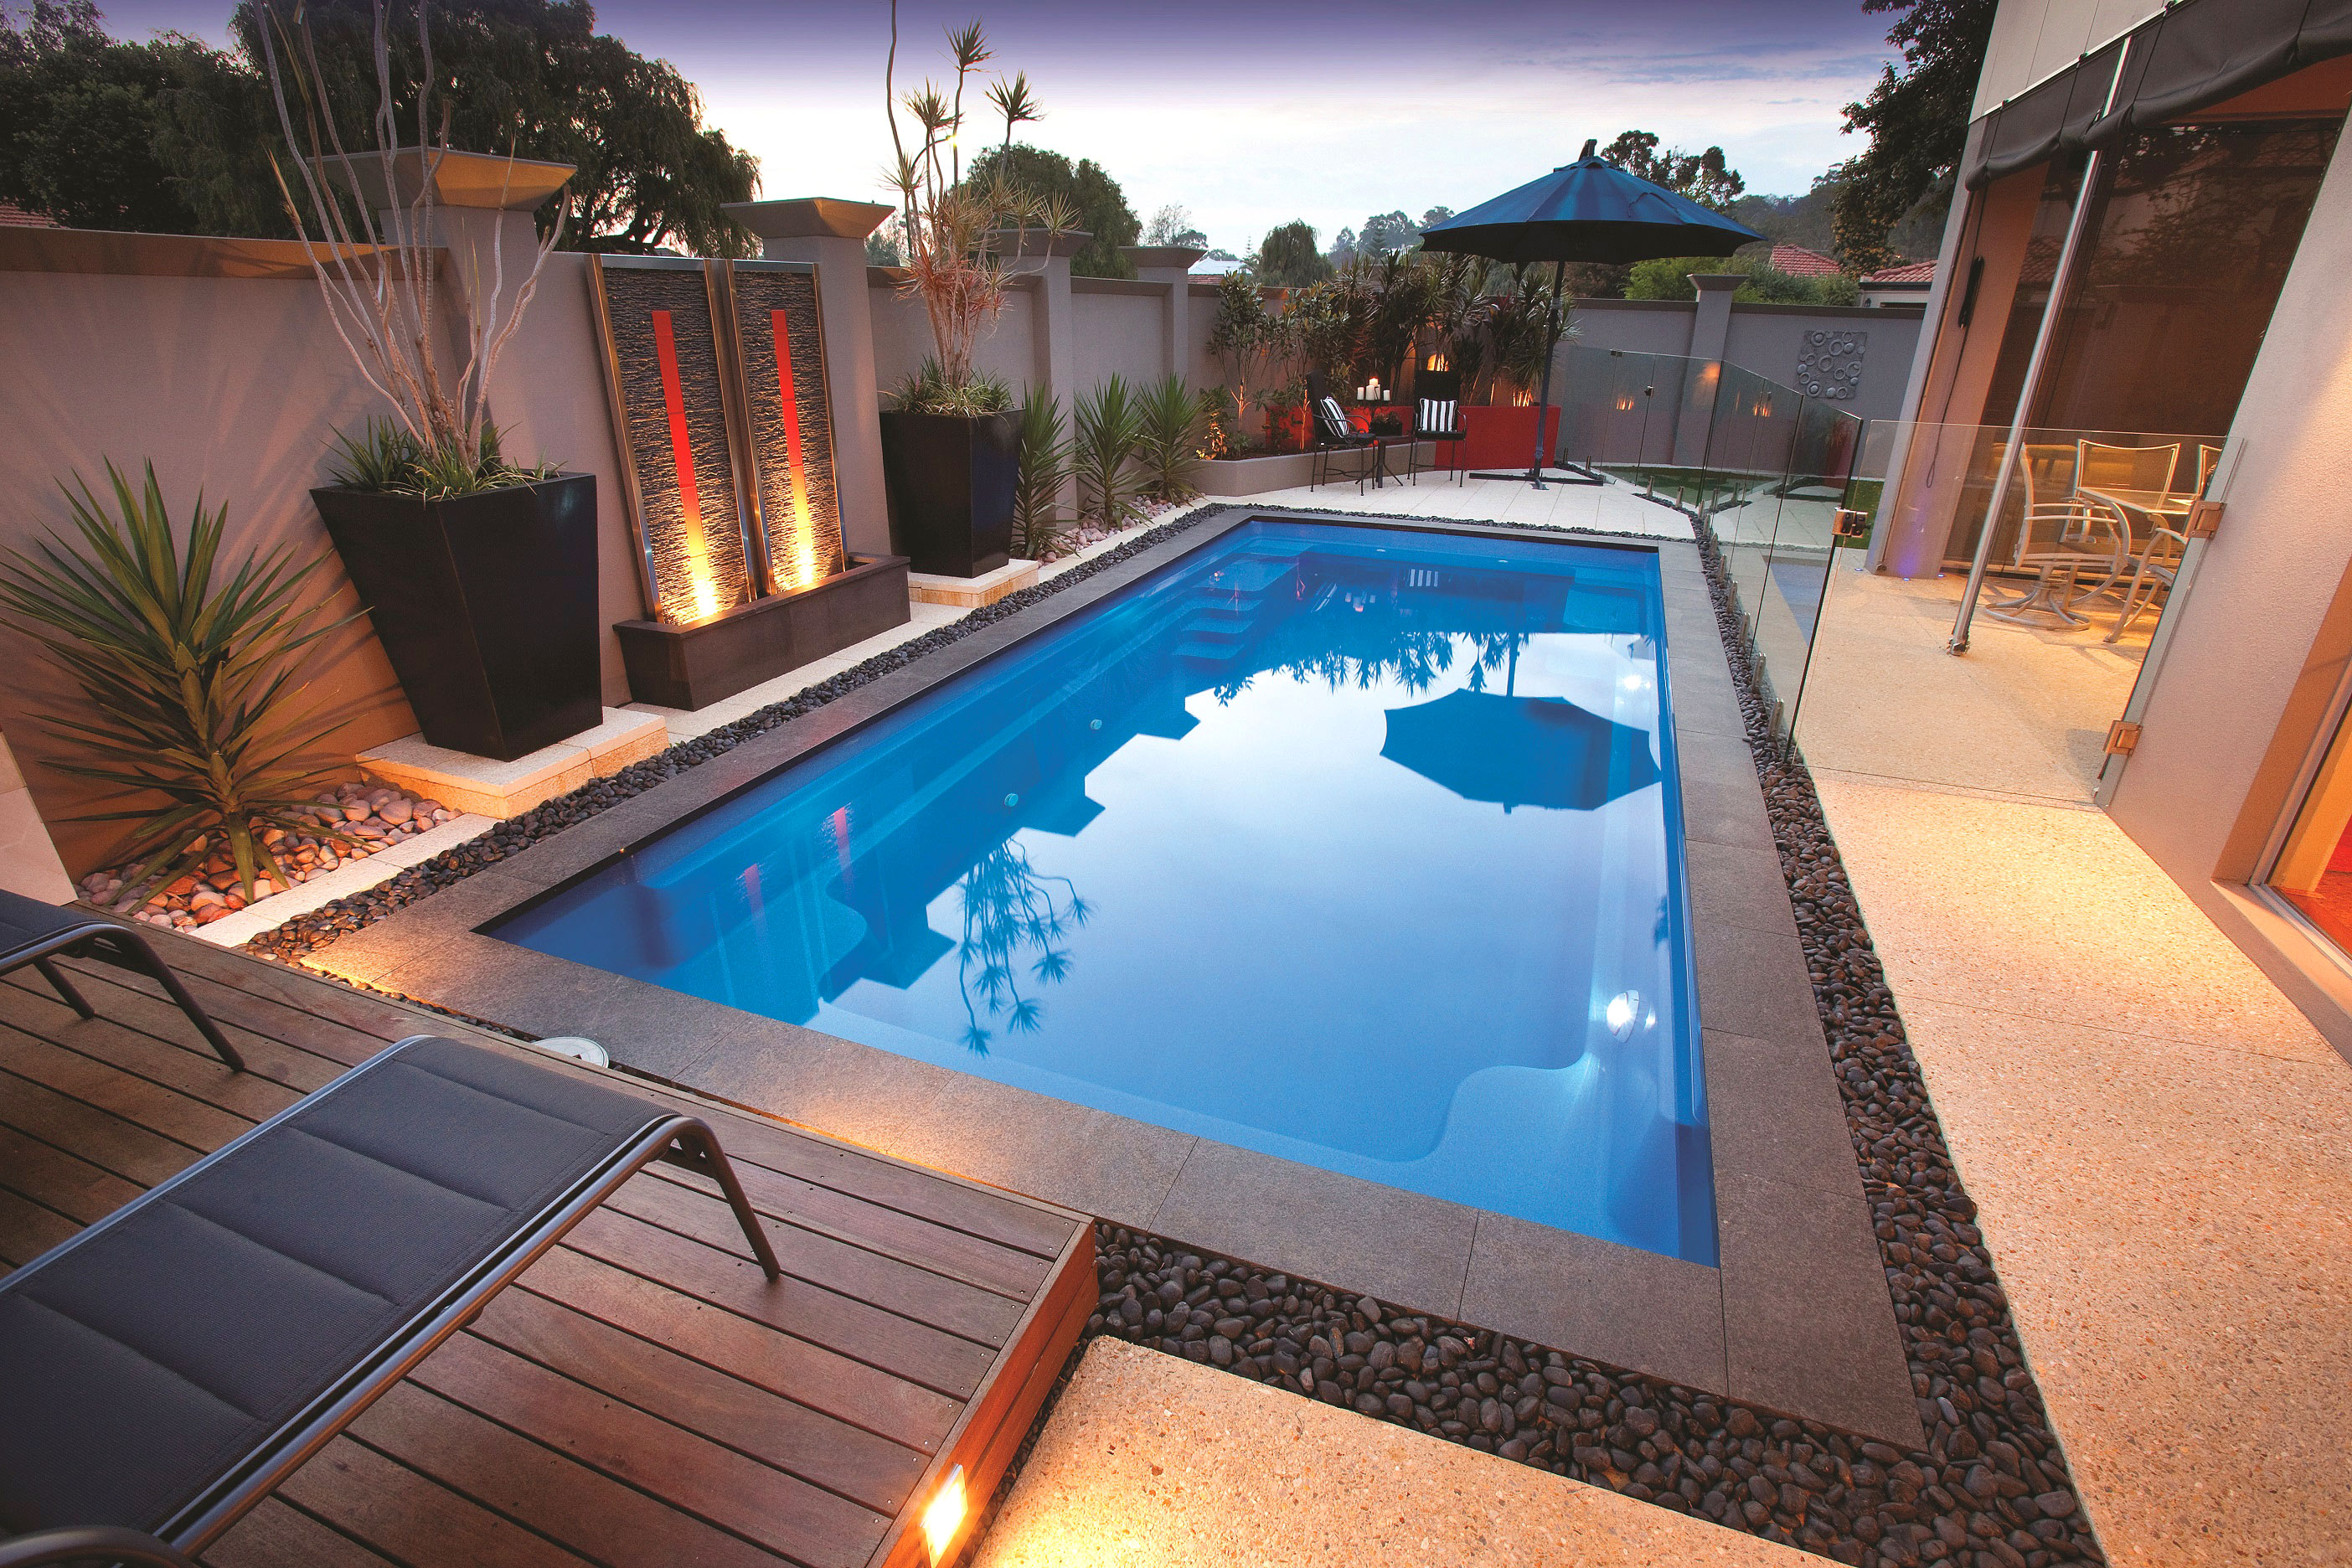 Aqua Technics Pools - Largest range of innovative fiberglass pools built stronger to last longer | Fade-resistant pool colour and limited lifetime surface warranty| Over 44 years' manufacturing experience | Highest grade fiberglass, award-winning swimming pools